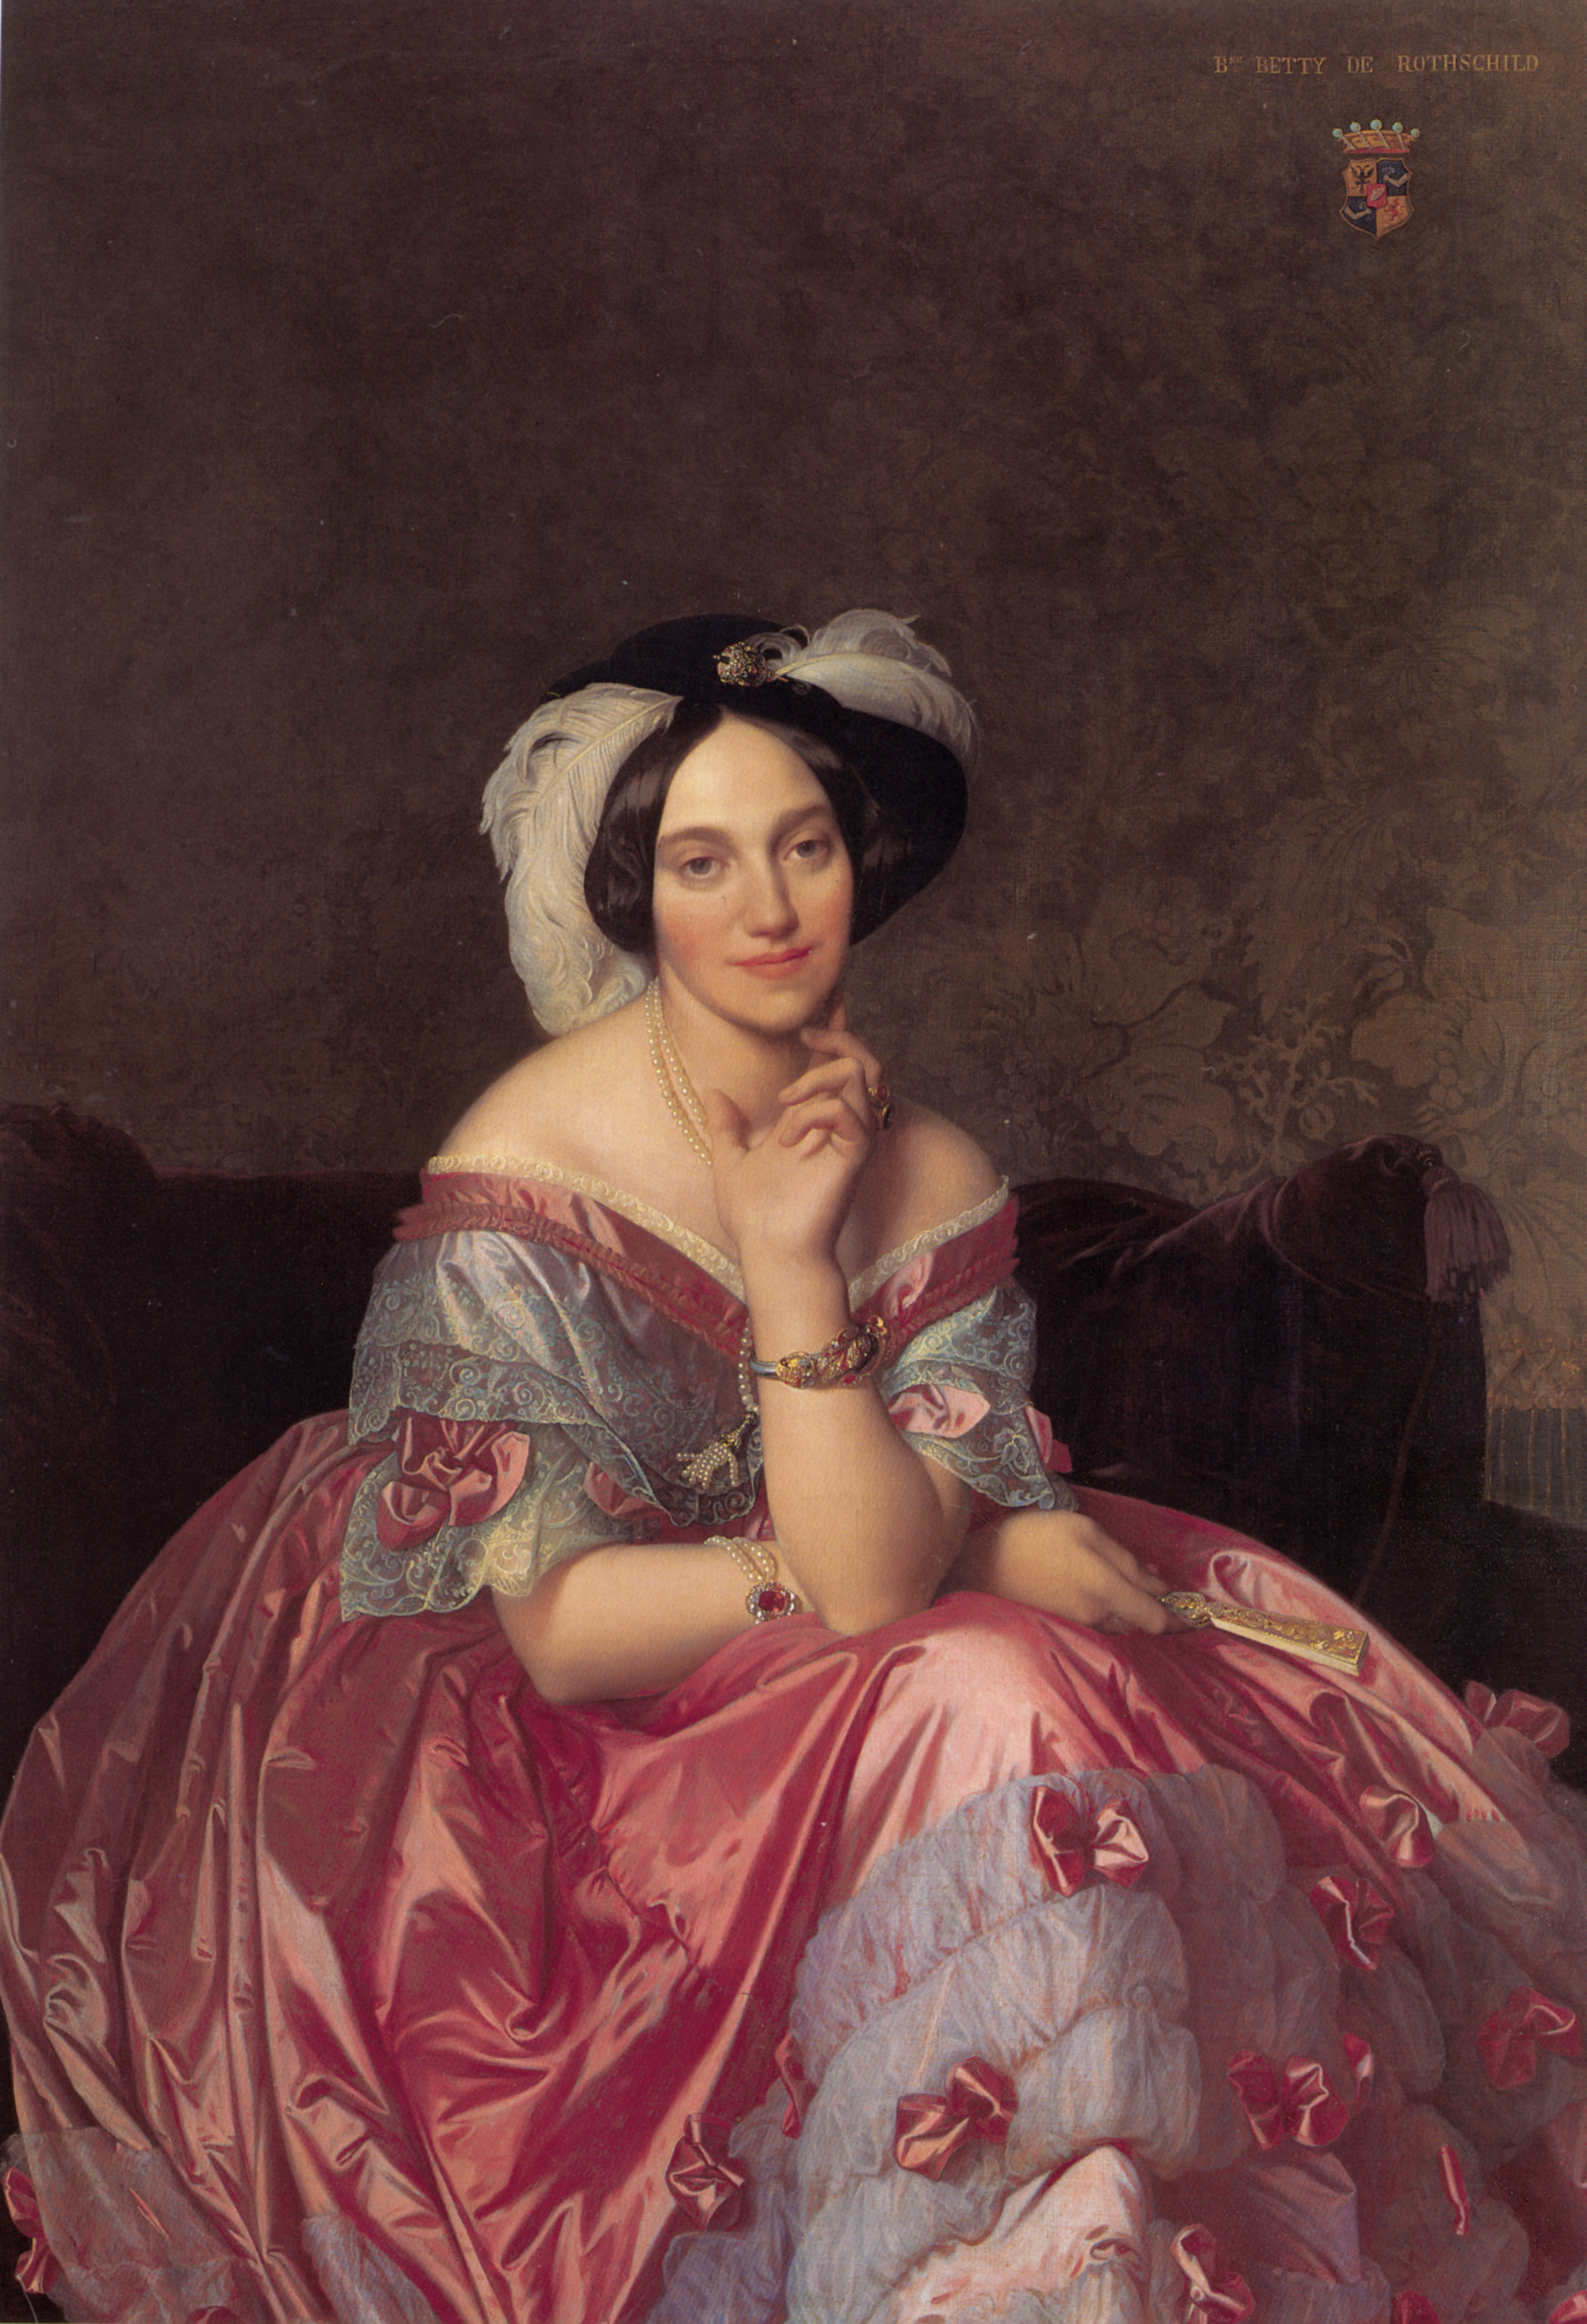 Betty de Rothschild, Baronne James de Rothschild